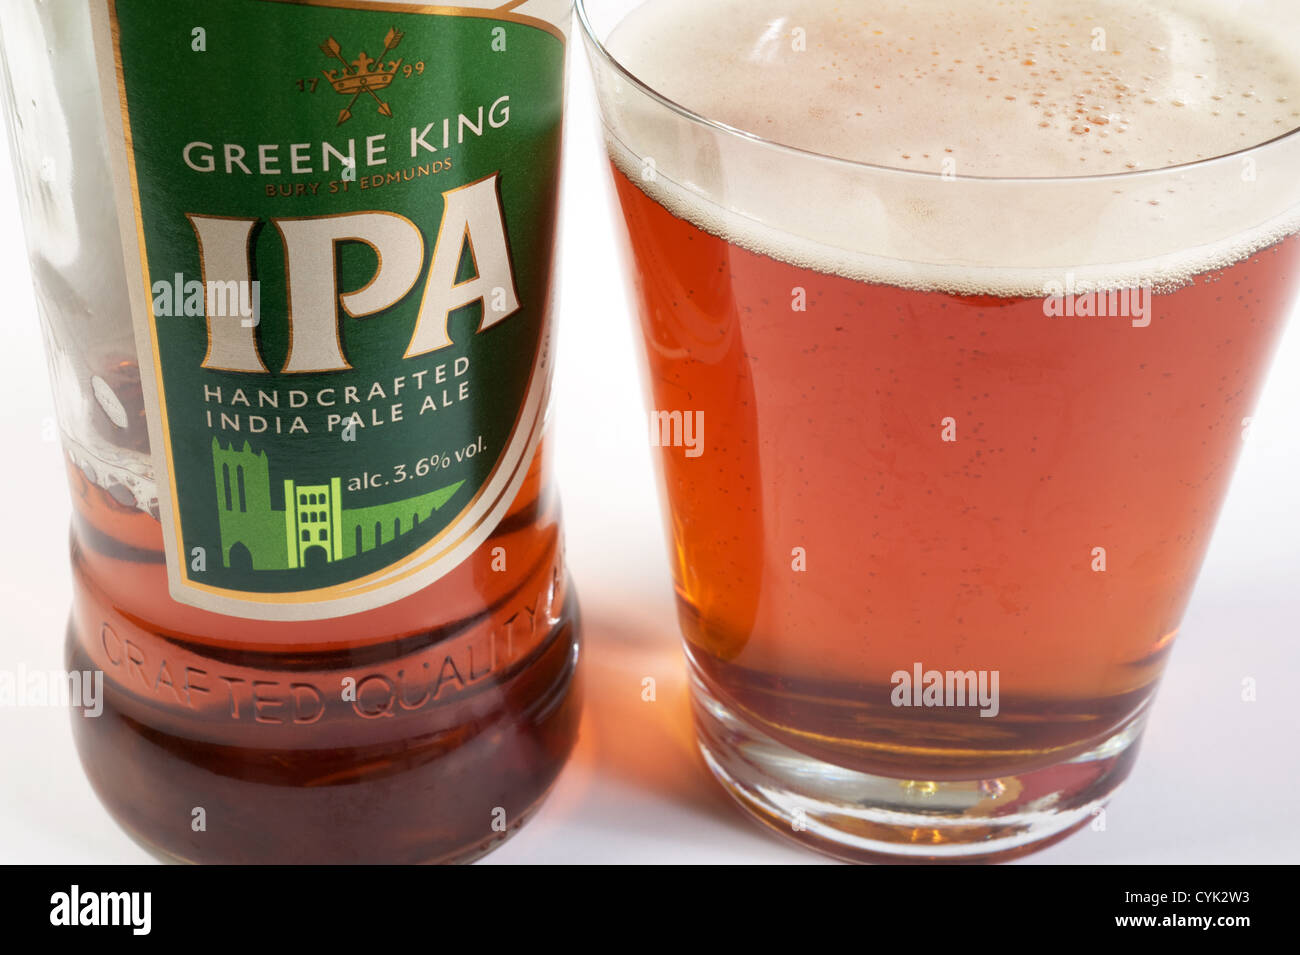 Greene King IPA (India Pale Ale) - Stock Image